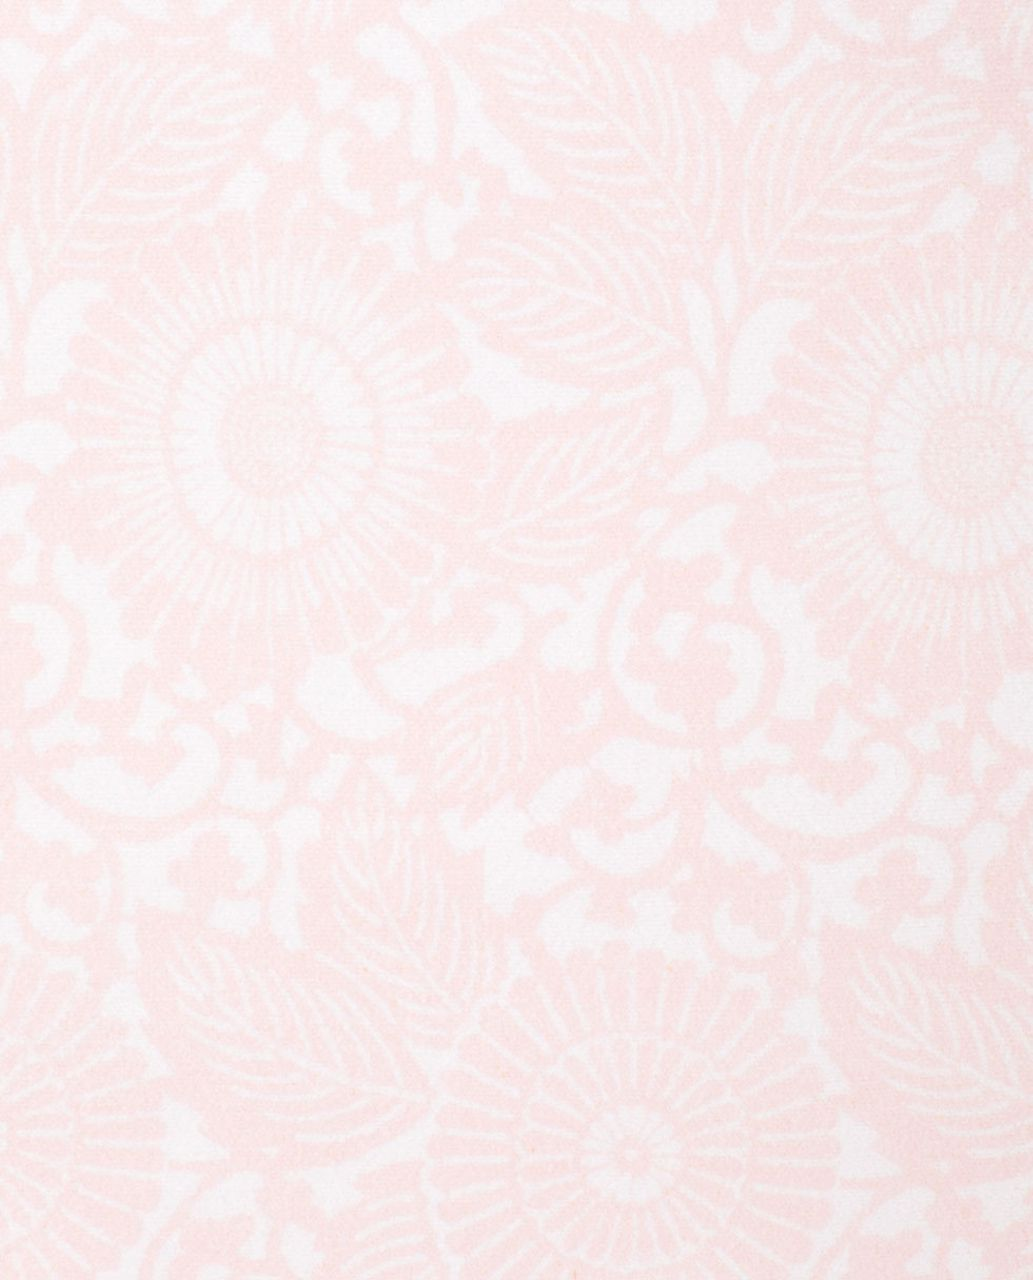 Lululemon Skidless Towel - Beachy Floral White Blush Quartz /  Blush Quartz